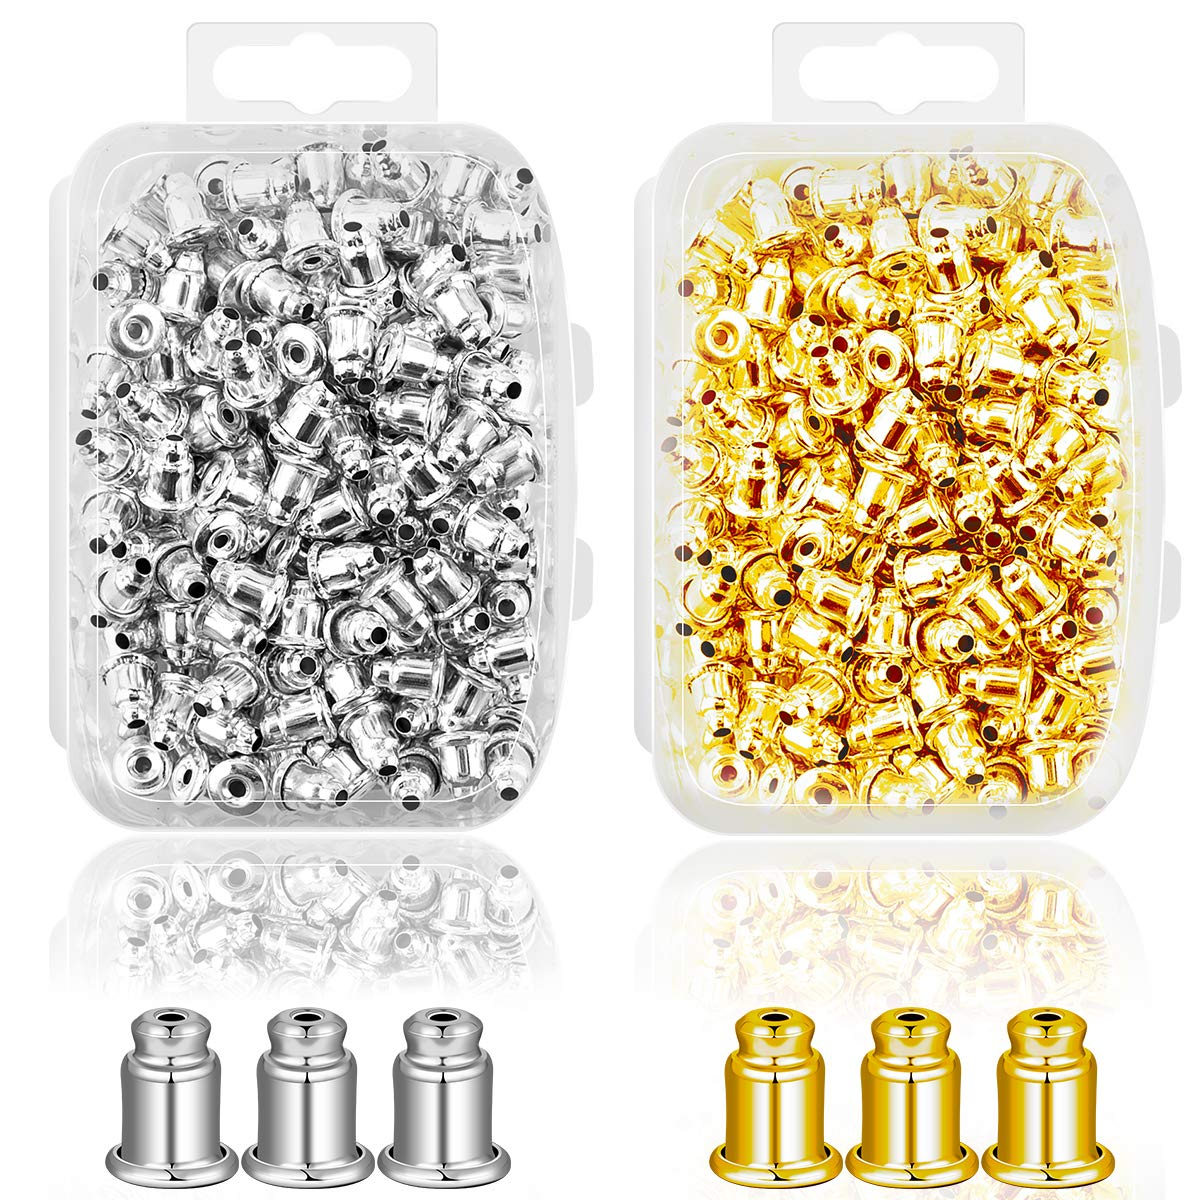 477e46522 Ear Backs Supplies - Metal Ear Nuts Bullet Safety Cluth Earring Stopper  Replacements for Ear Hook